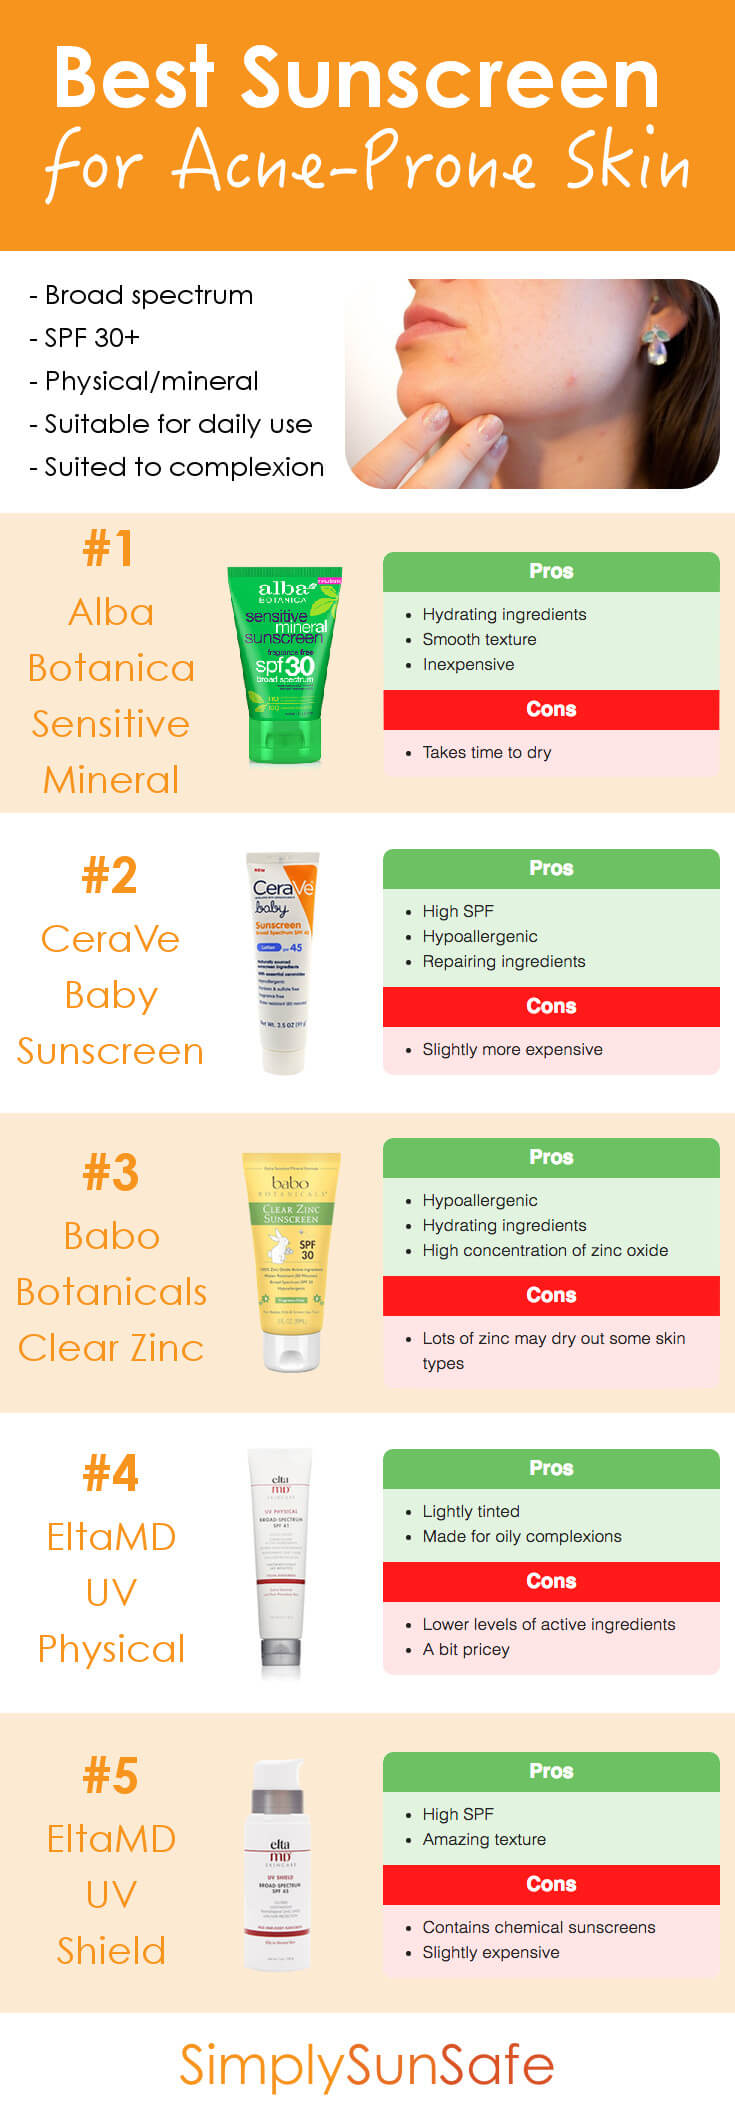 Best Sunscreen for Acne-Prone Skin Pinterest